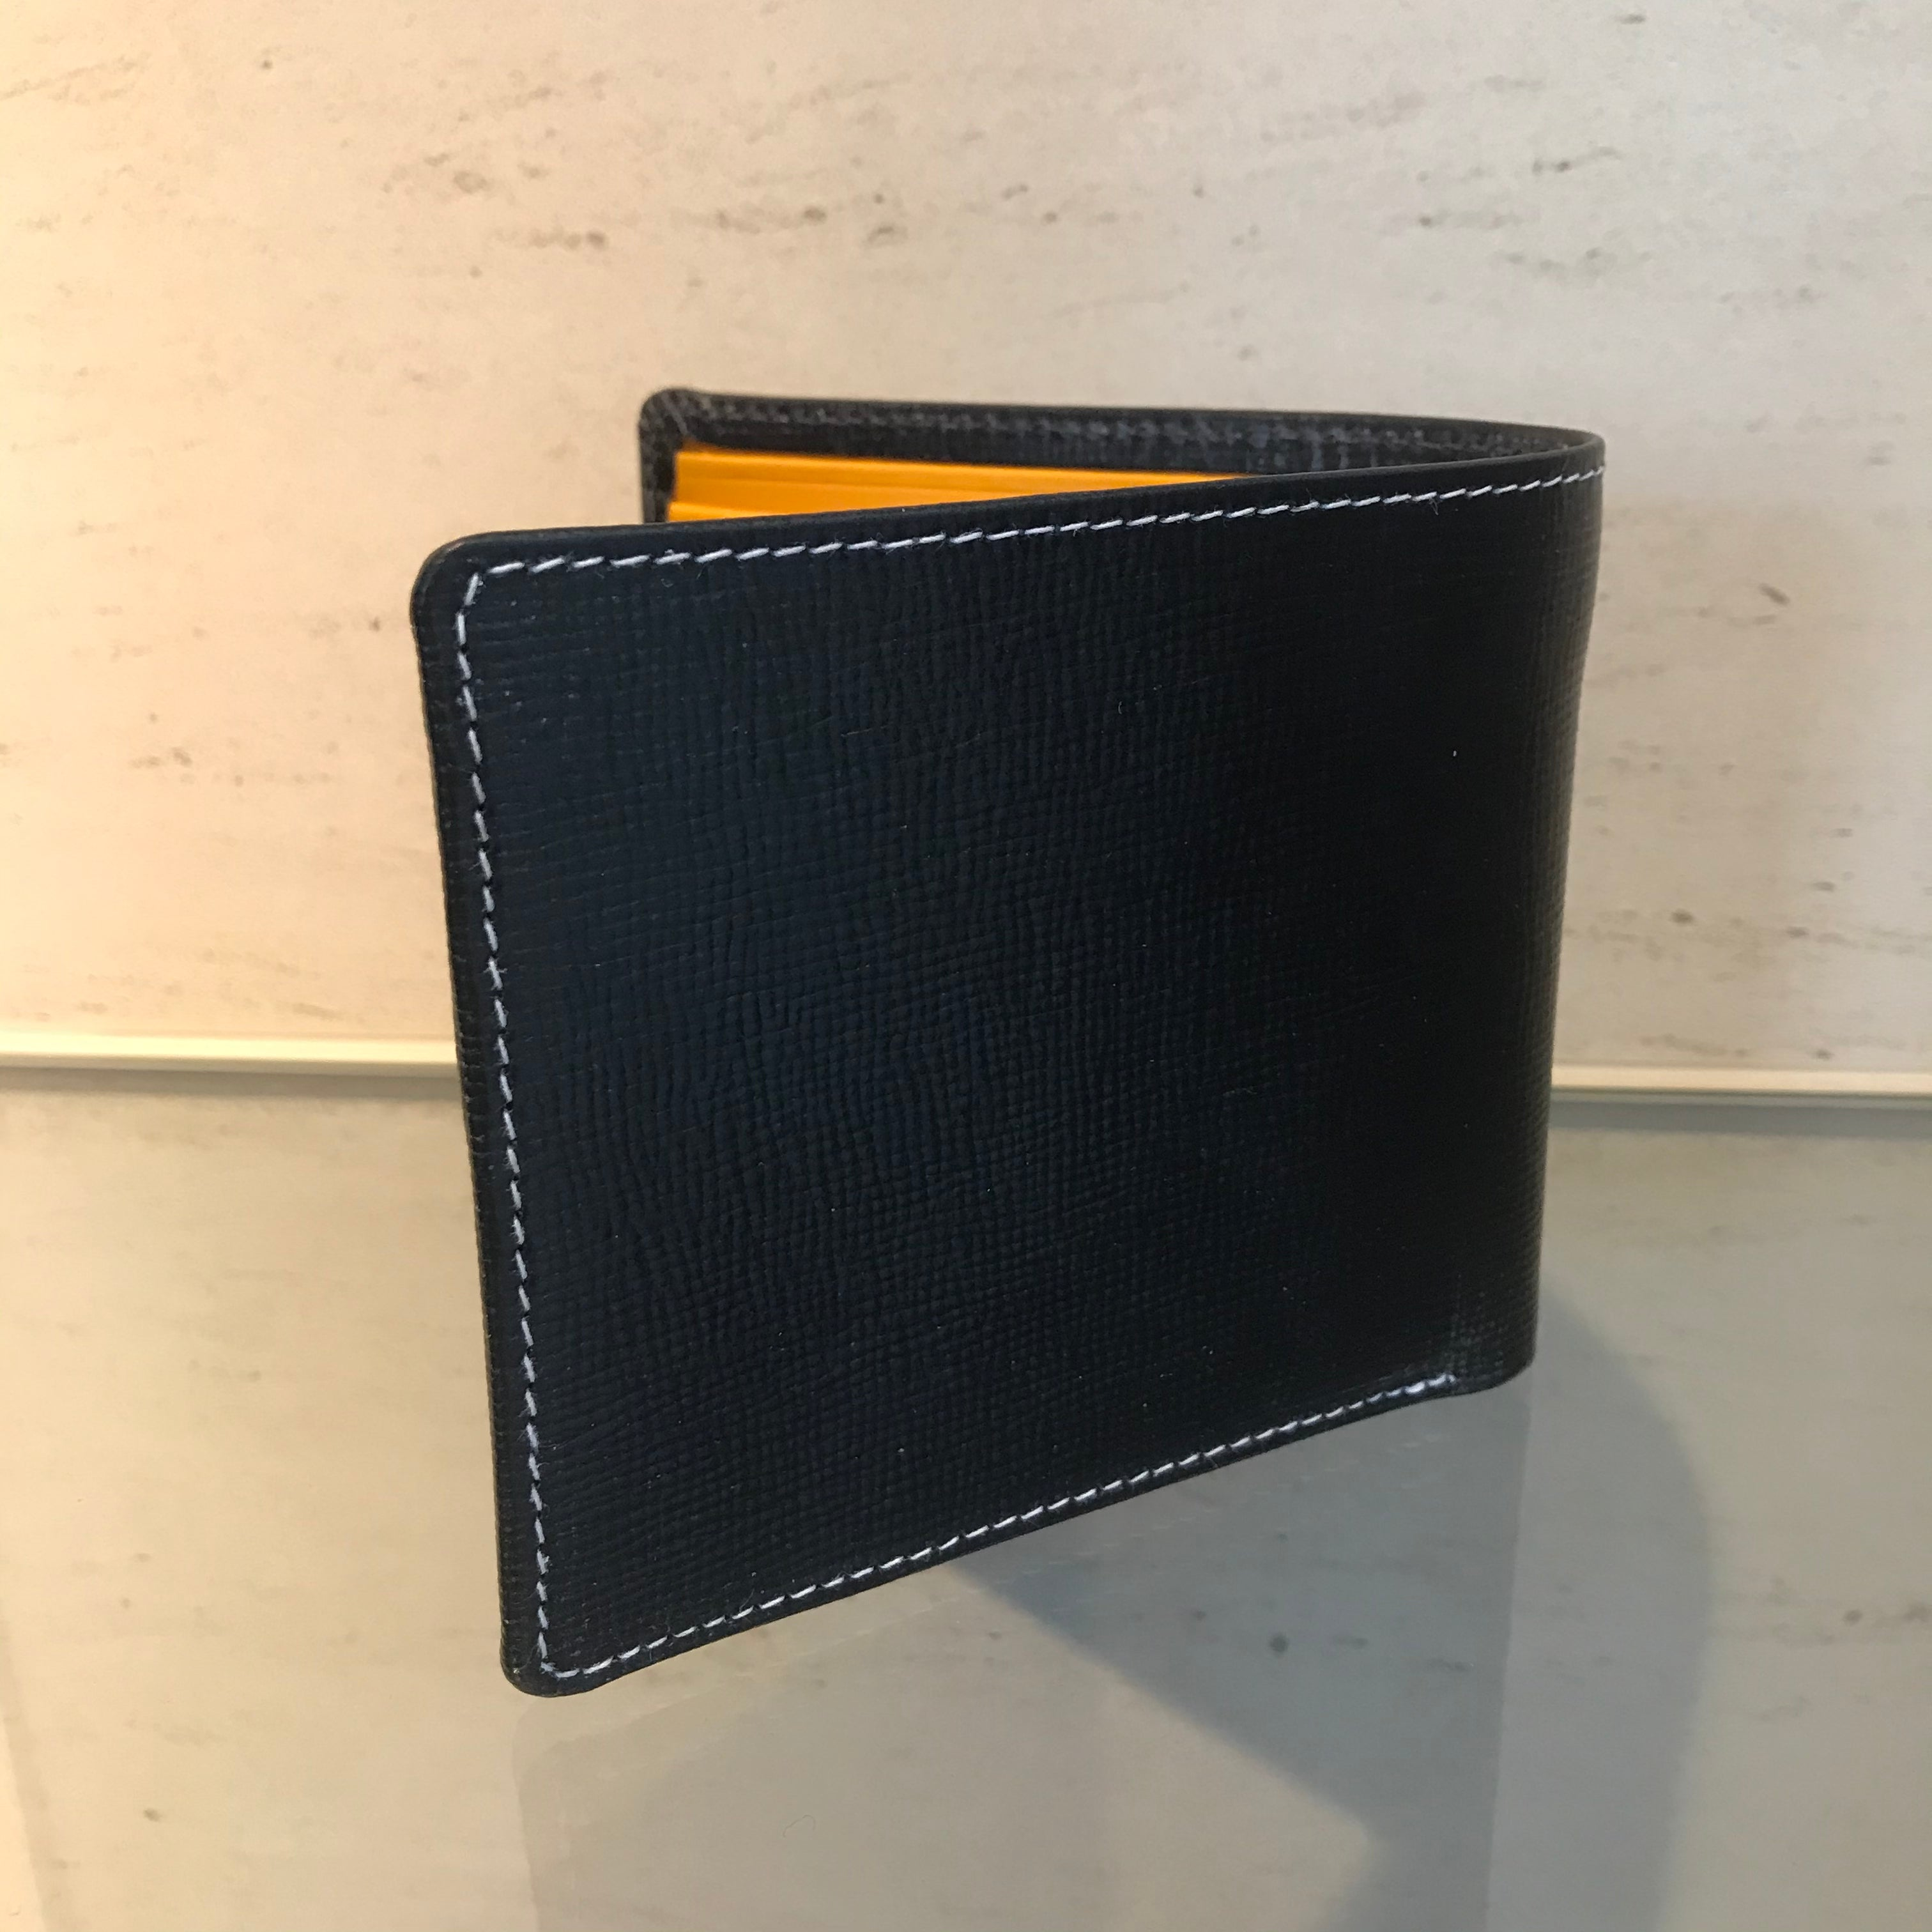 Whitehouse Cox ホワイトハウスコックス S7532 NOTECASE WITH COIN CASE  二つ折り財布 REGENT BRIDLE